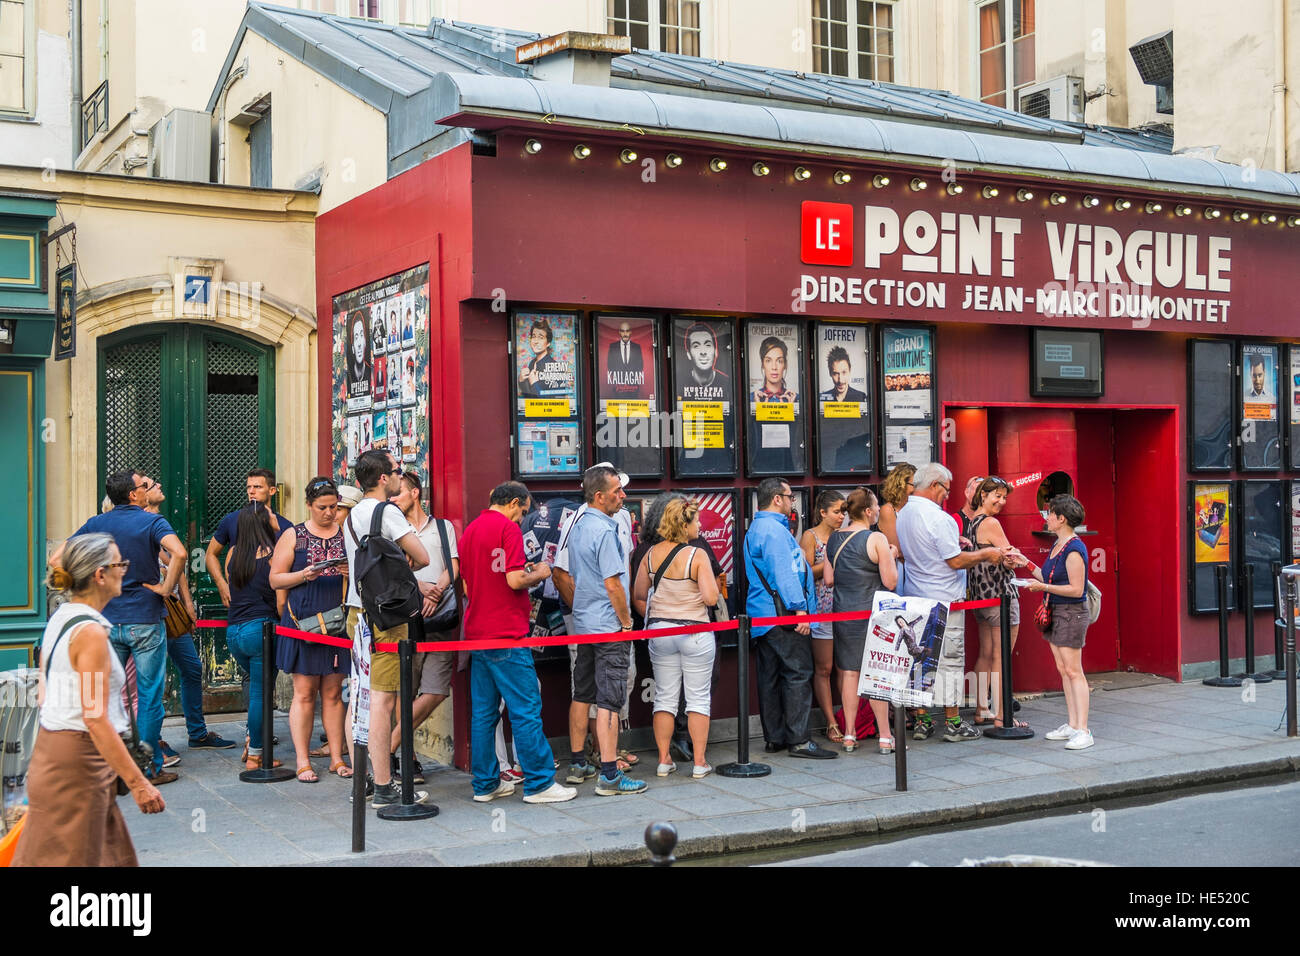 people lining up for tickets on a saturday night at le point  virgule theater - Stock Image